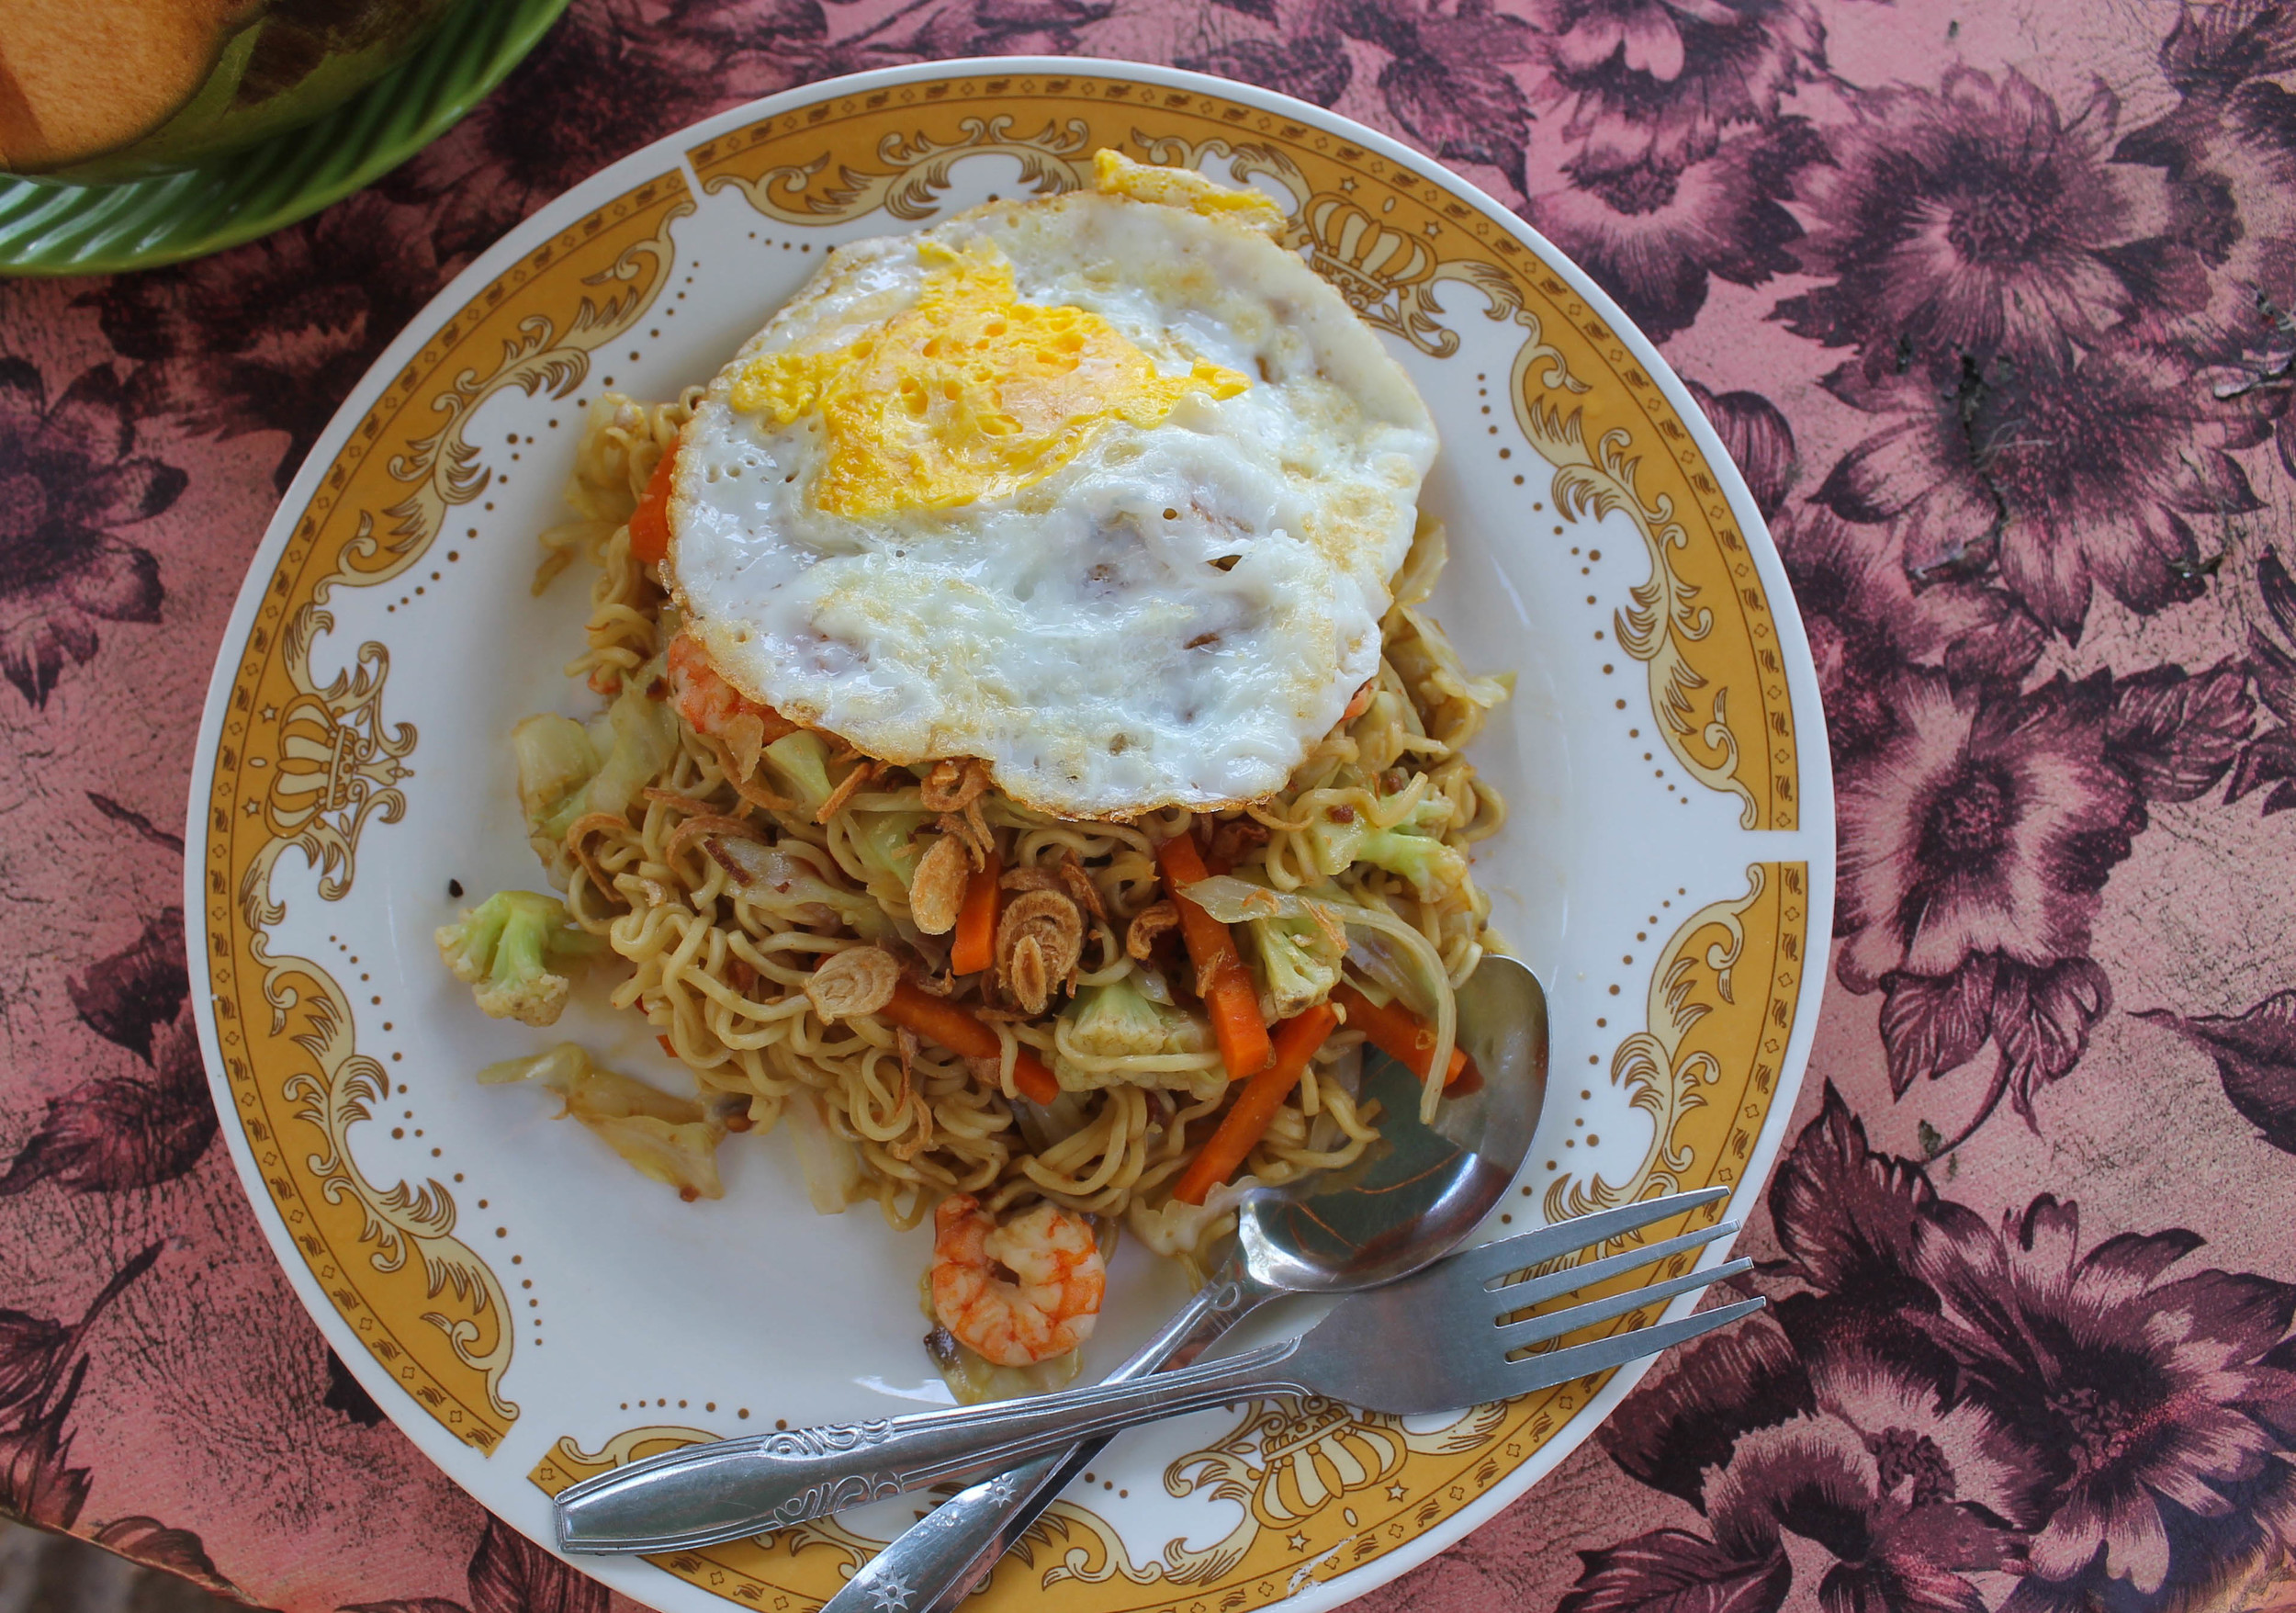 I got this Mie Goreng at a beach shack (like actual shack, not just a fun attempt at quirky decor) and I was raving about it until I saw that it was actually just made from a 2 minute noodle pack (to be fair,they did have a limited kitchen in said shack) and then began to question why the 2 minute noodle dishes I often made during college were garbage compared to this one that again, was made in shack.